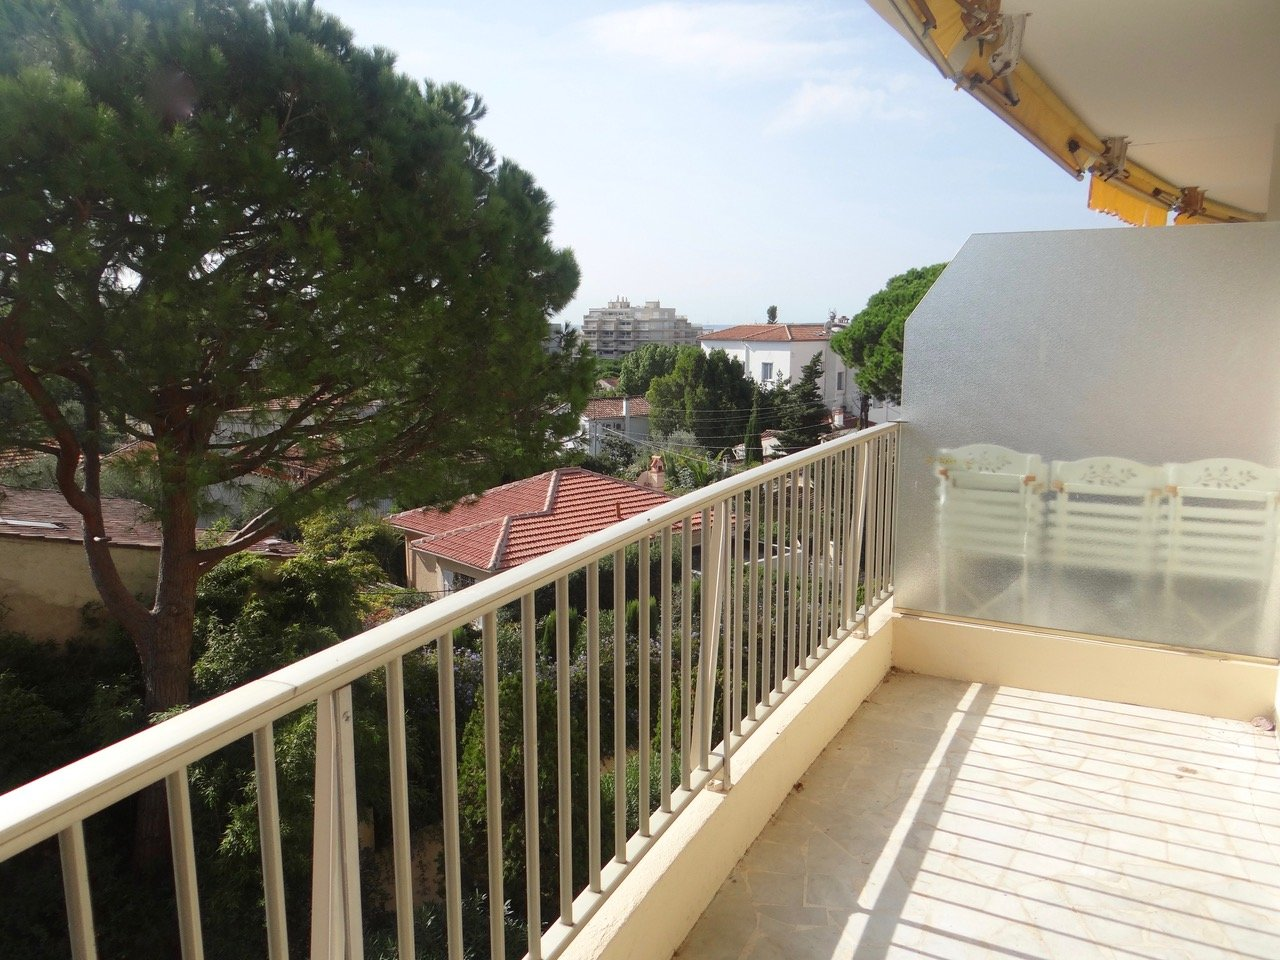 ANTIBES/JUAN-LES-PINS - French Riviera - One bed apartment - near beaches